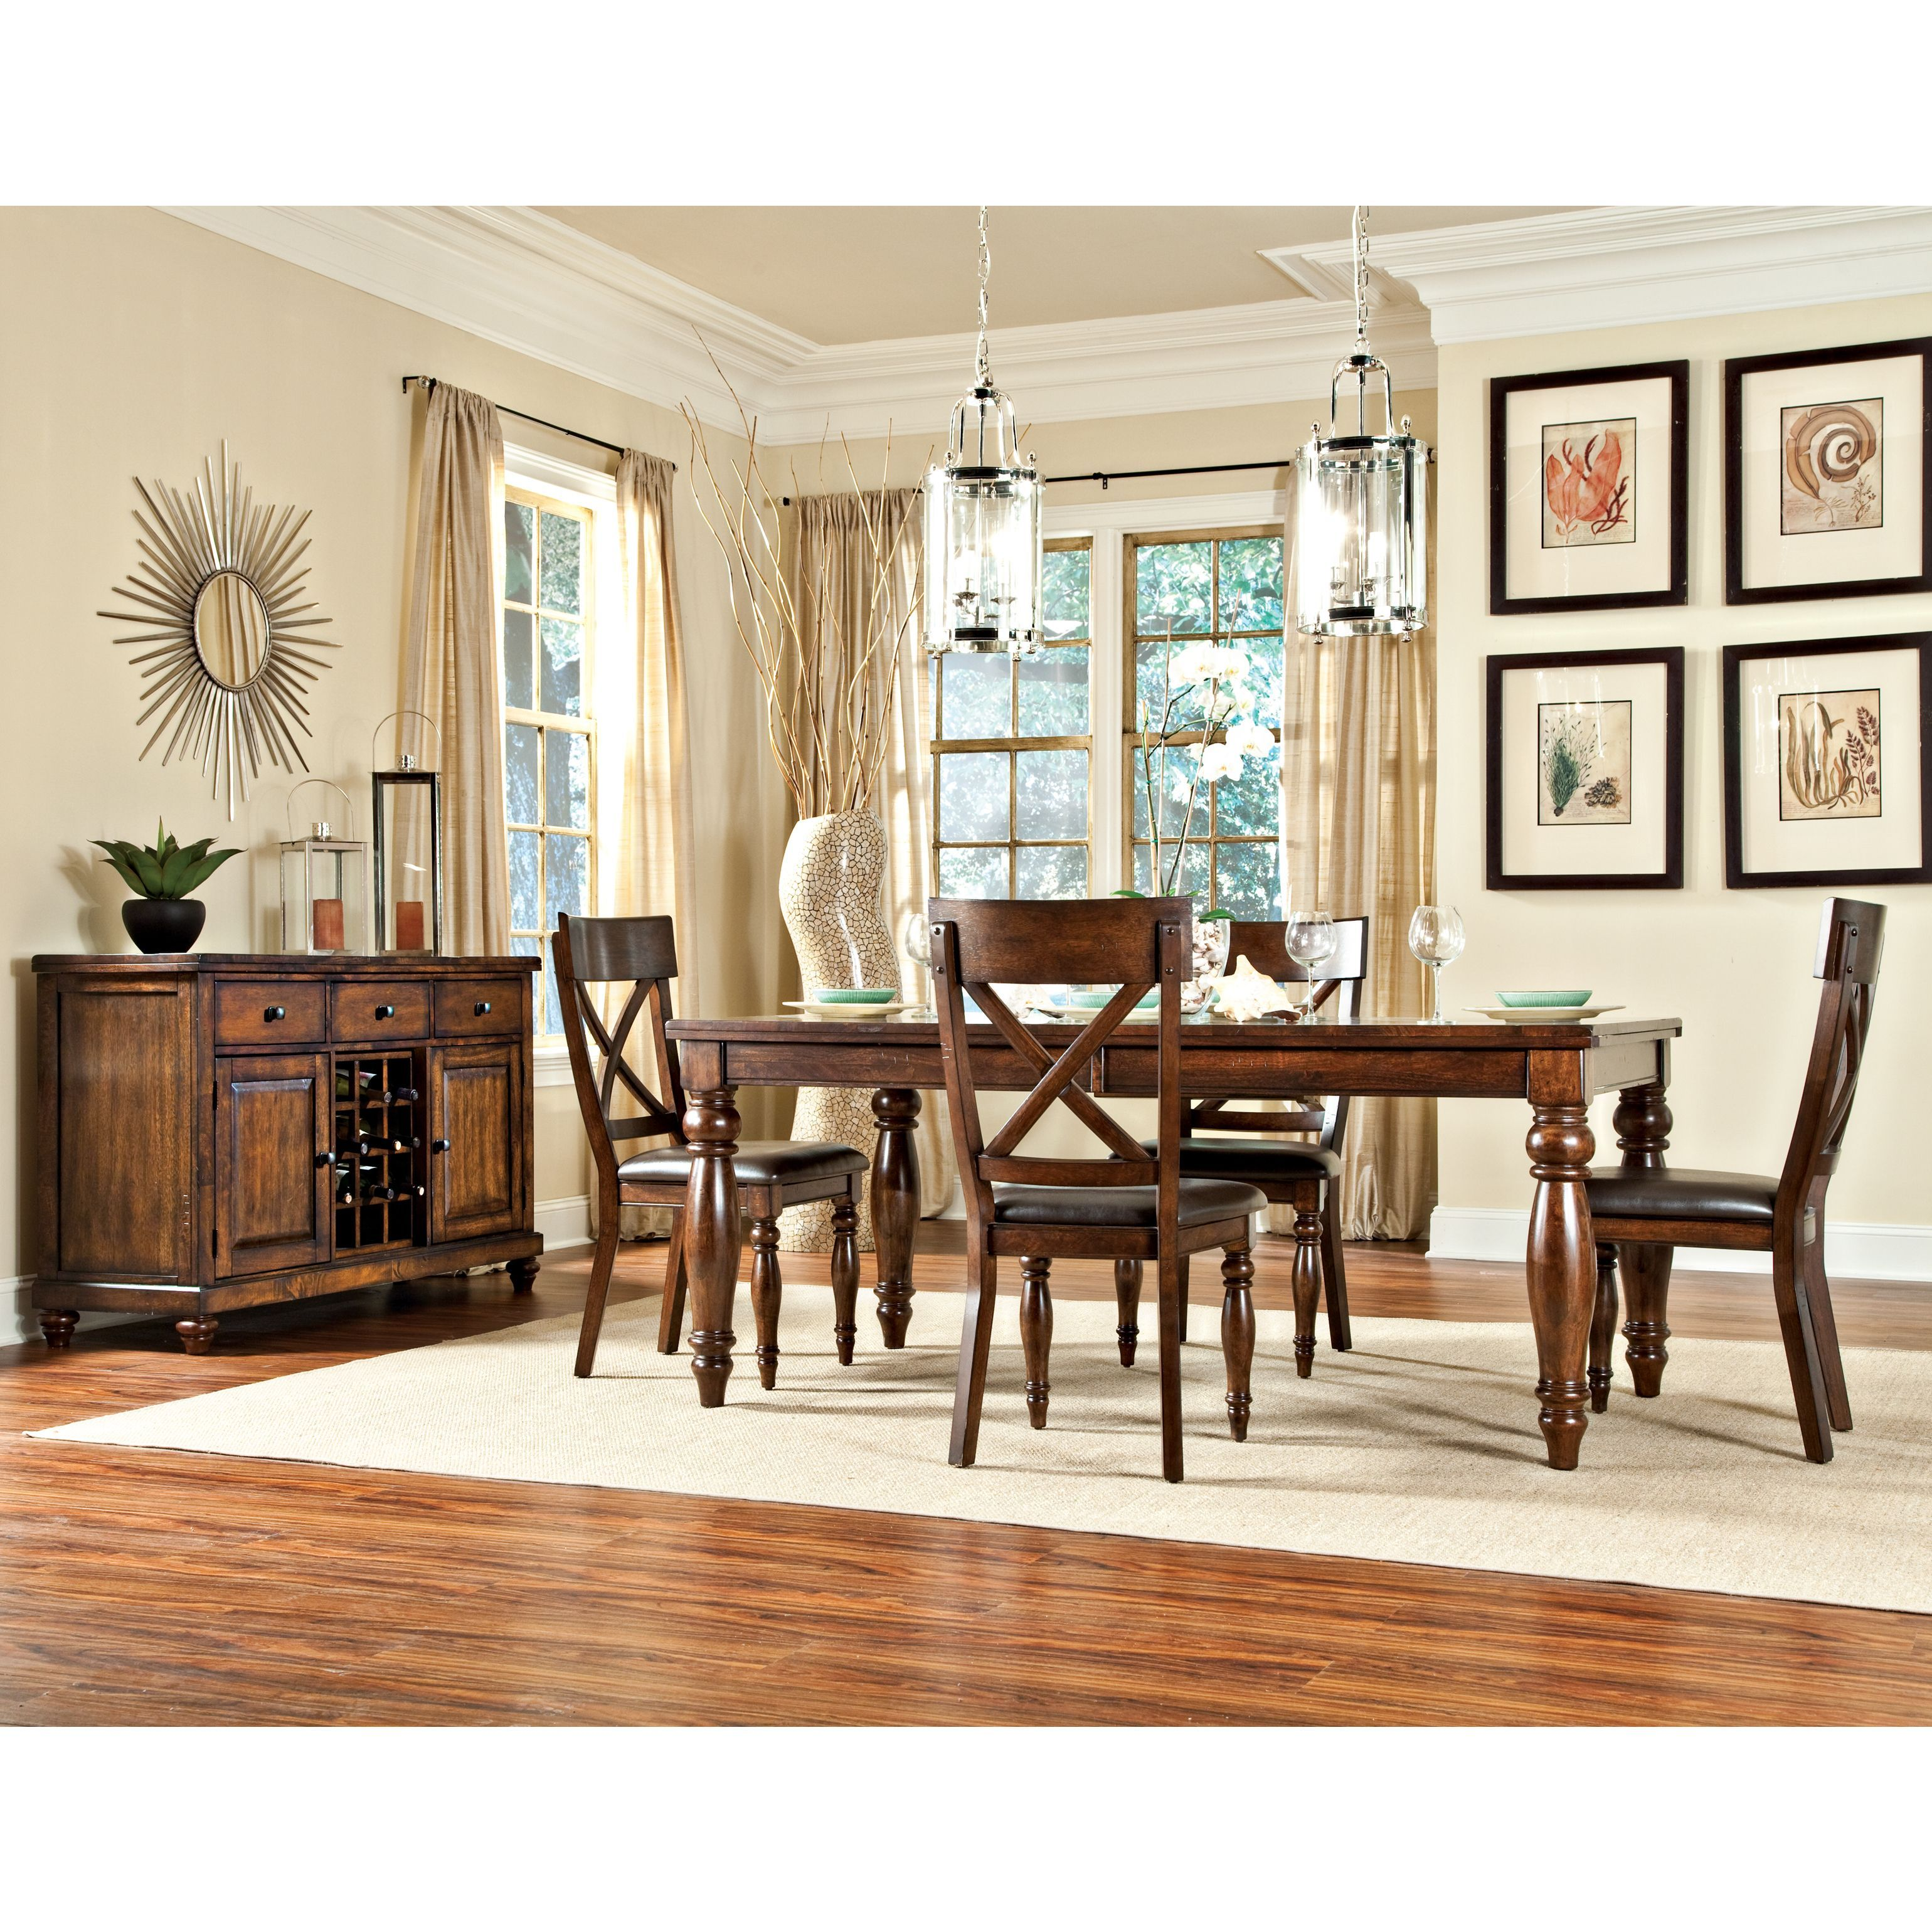 Made Of Durable And Sturdy Wood, This Kingston Dining Collection Includes A  Table And Four